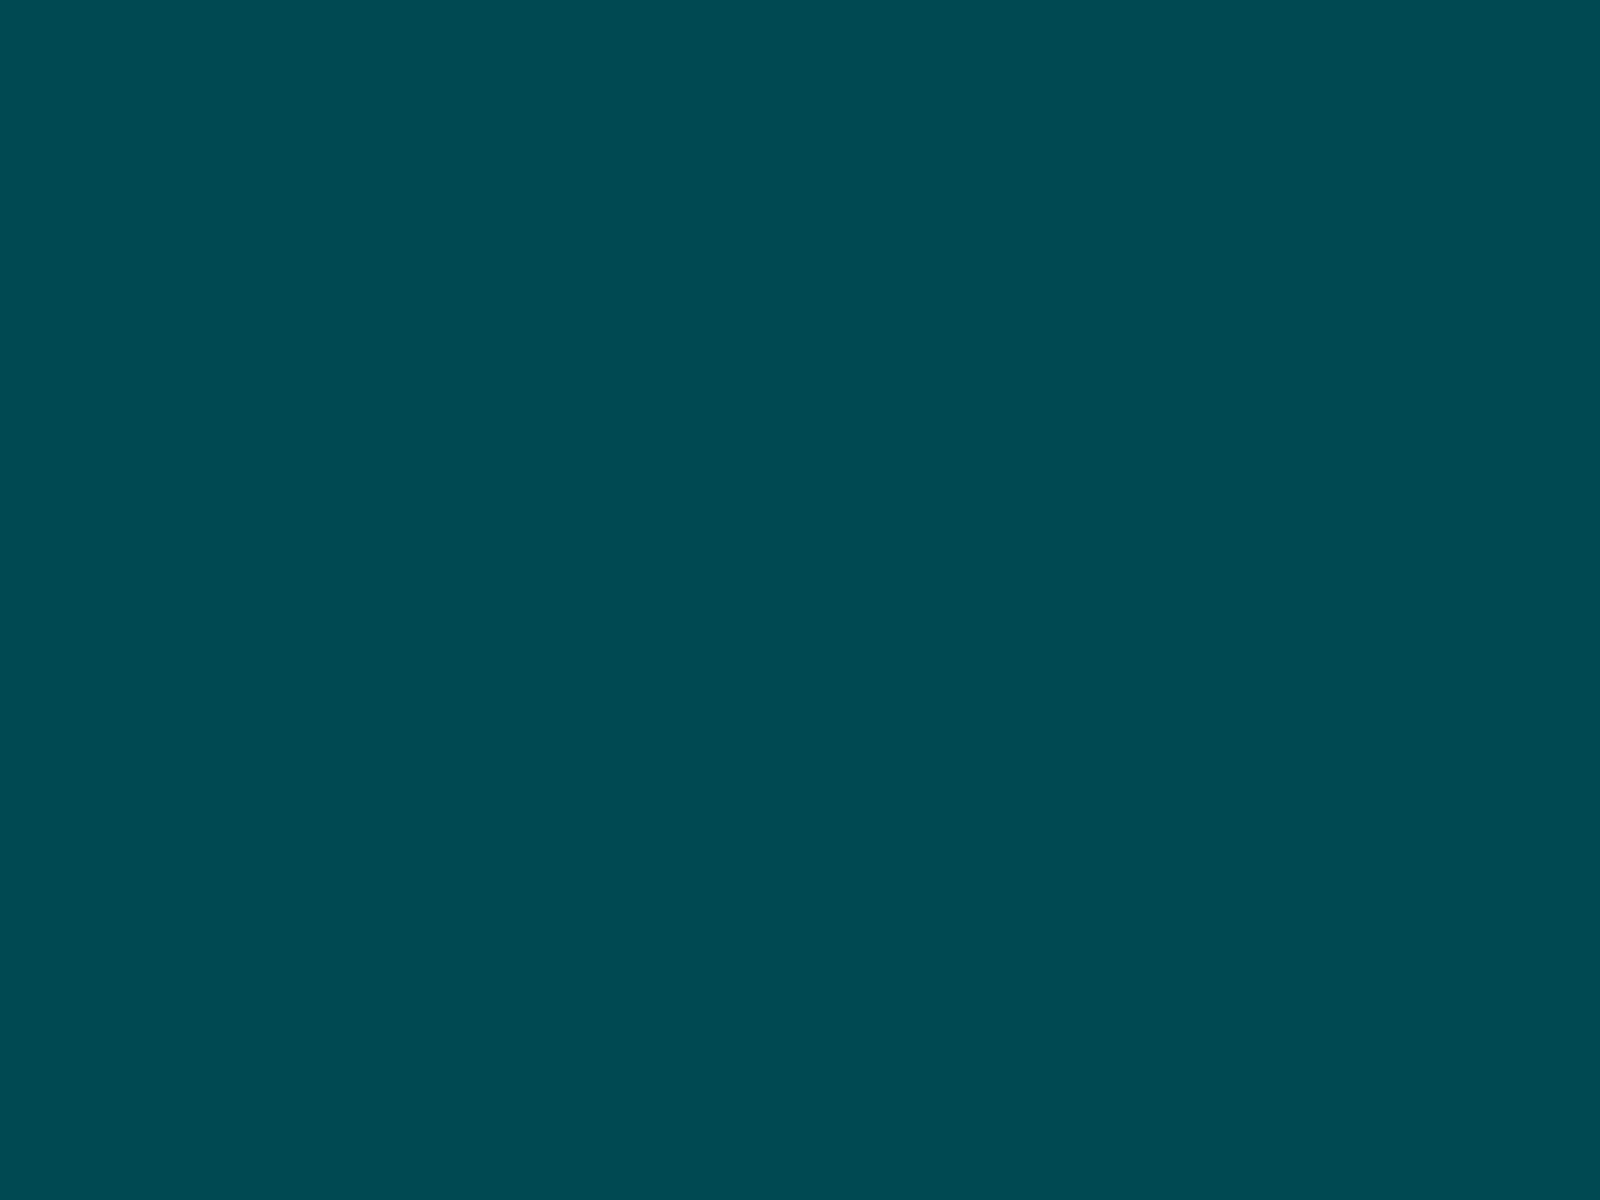 1600x1200 Midnight Green Solid Color Background